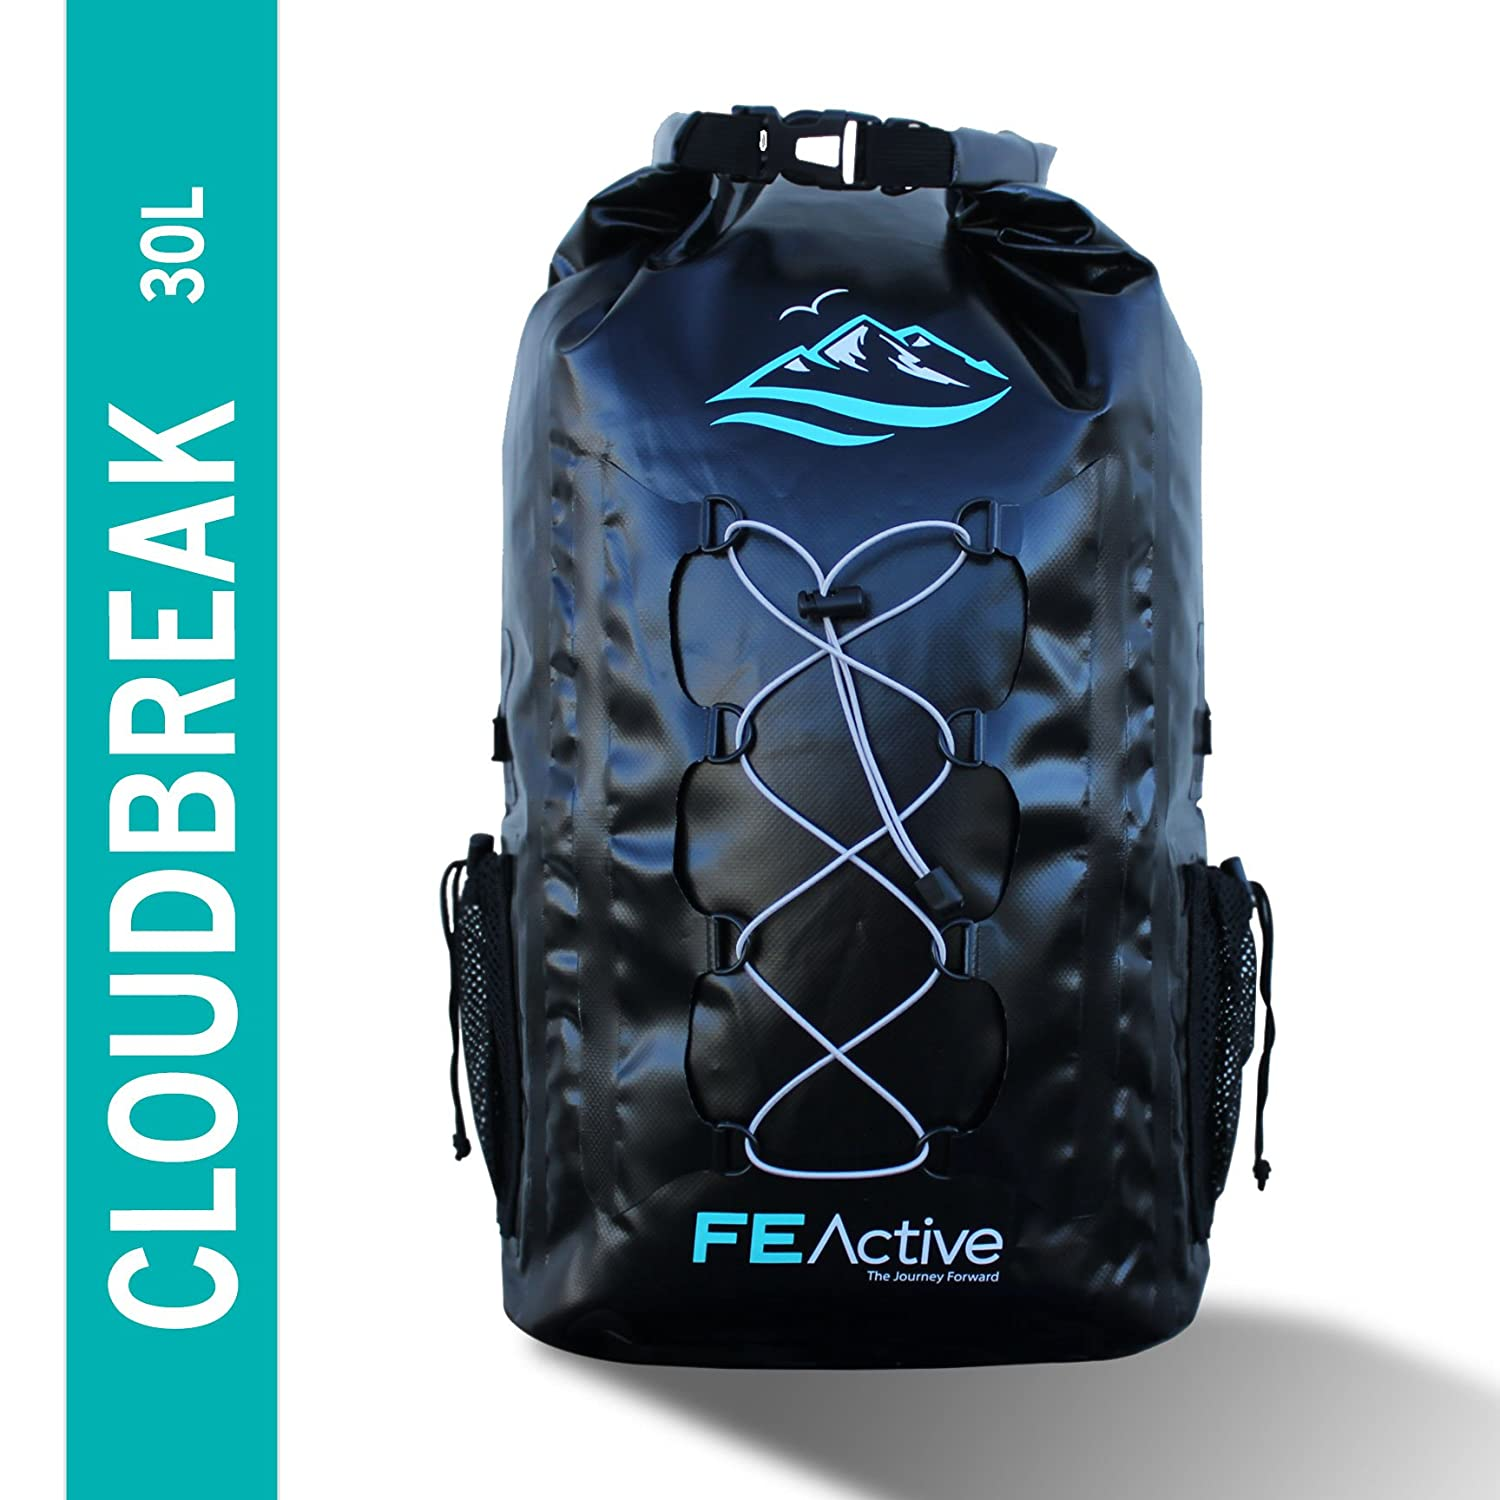 Forum on this topic: Best Backpacks for Every Activity, best-backpacks-for-every-activity/